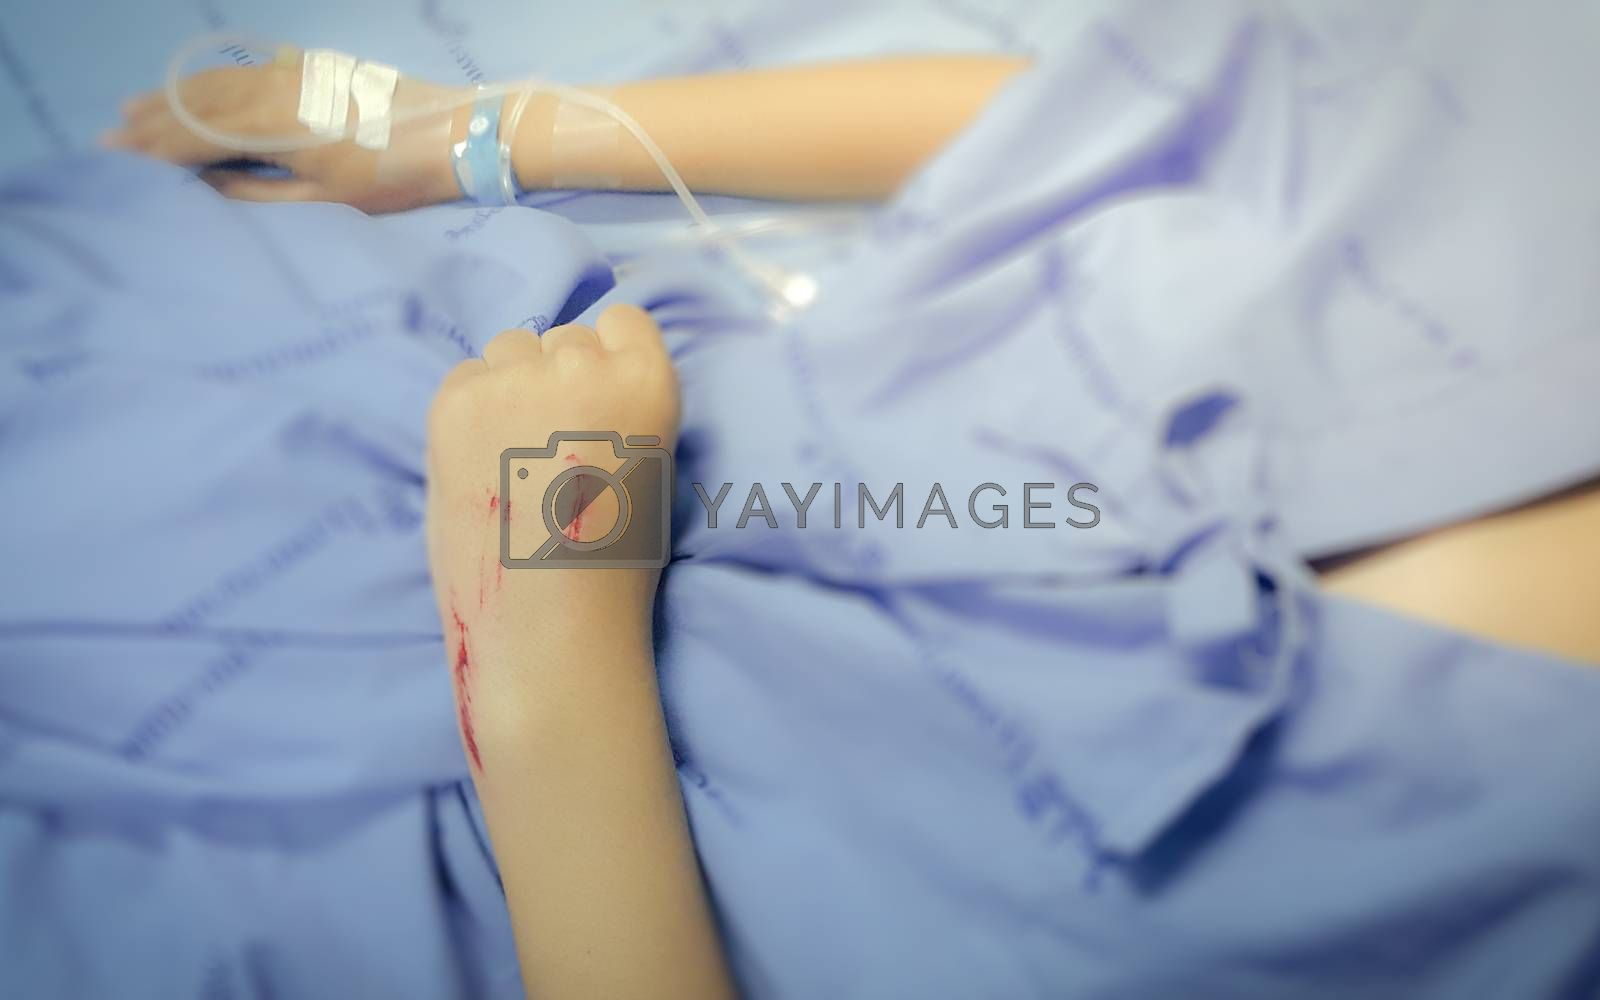 saline solution drip for patient and infusion pump in hospital